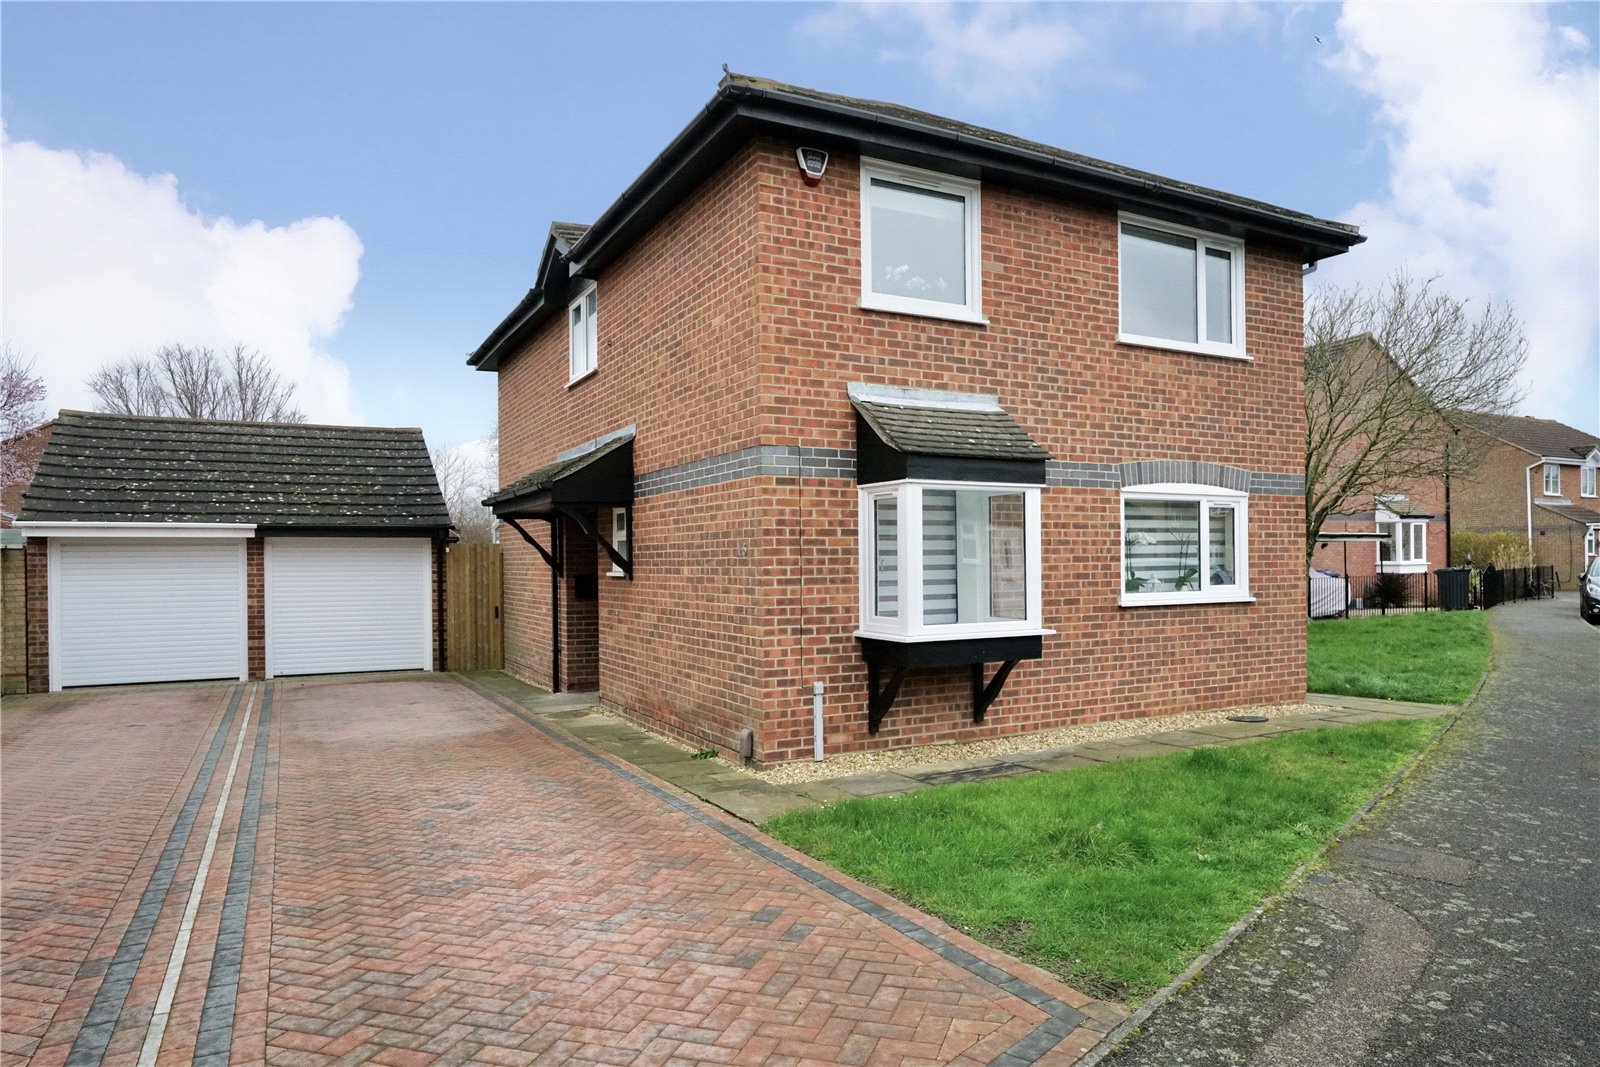 4 bed house for sale in Bodiam Way, Eynesbury - Property Image 1